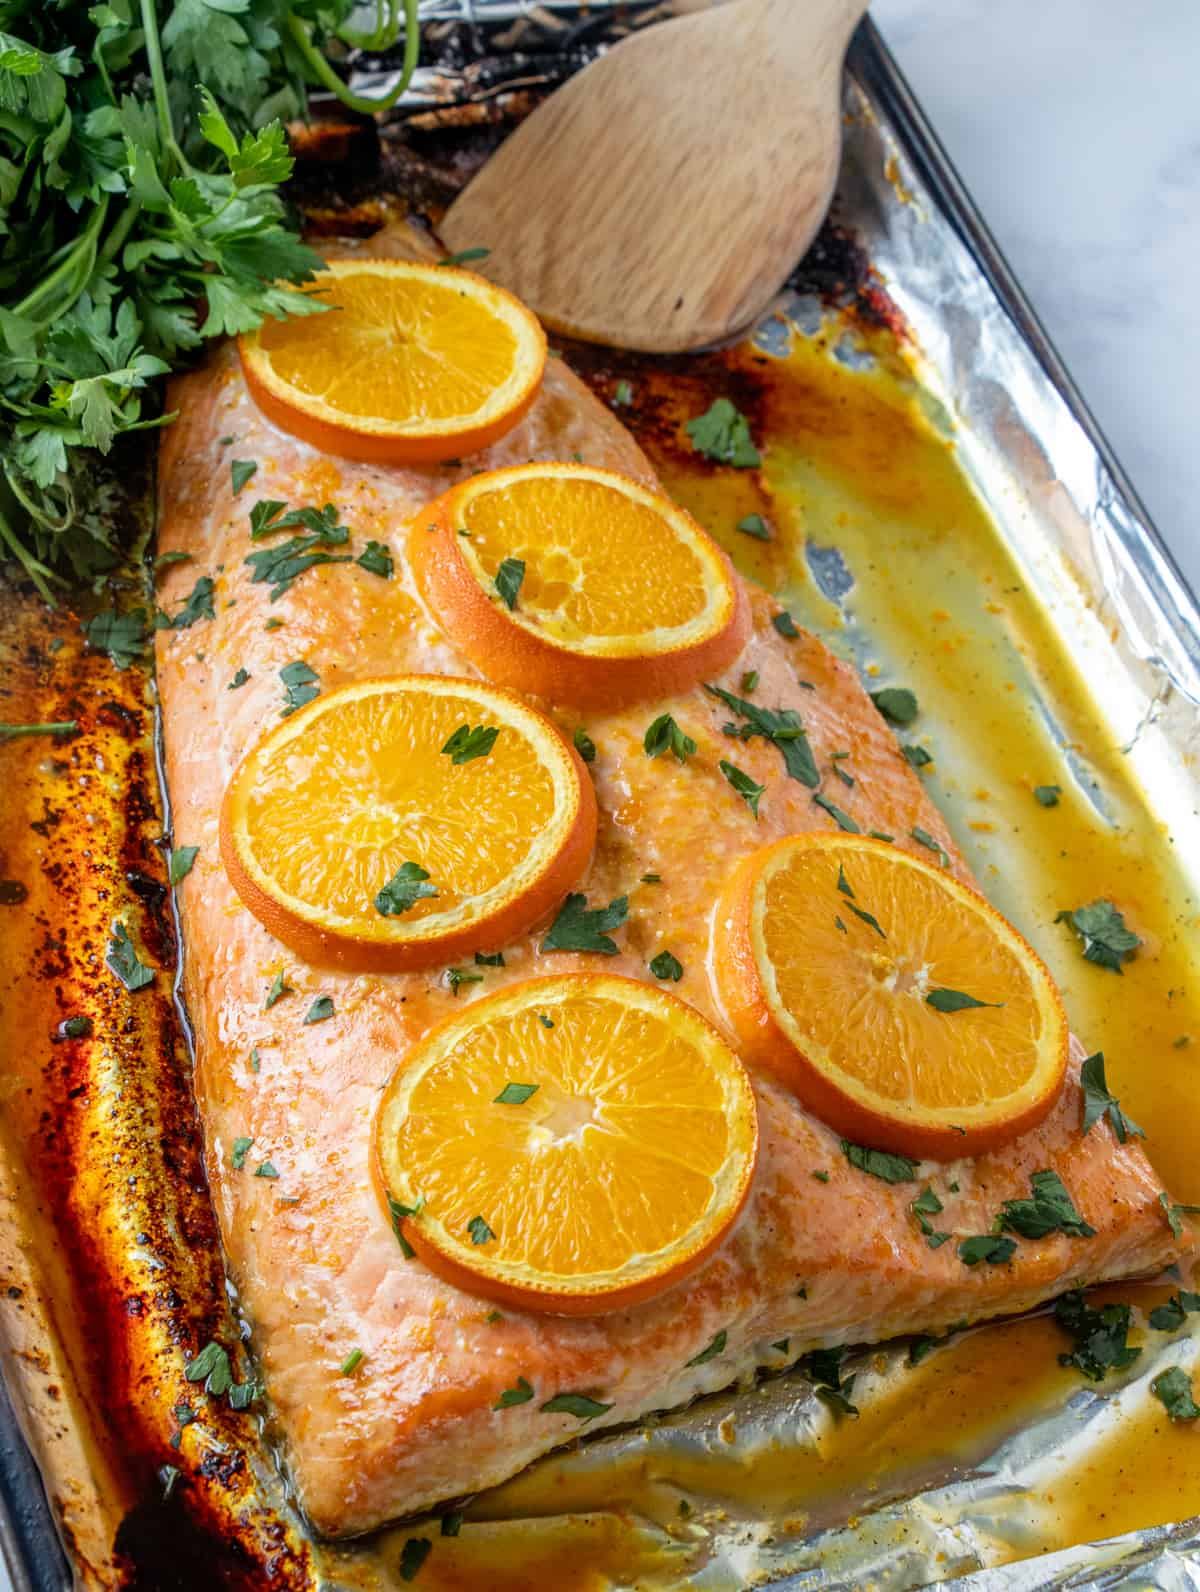 Overhead photo of baked salmon on baking sheet topped with oranges